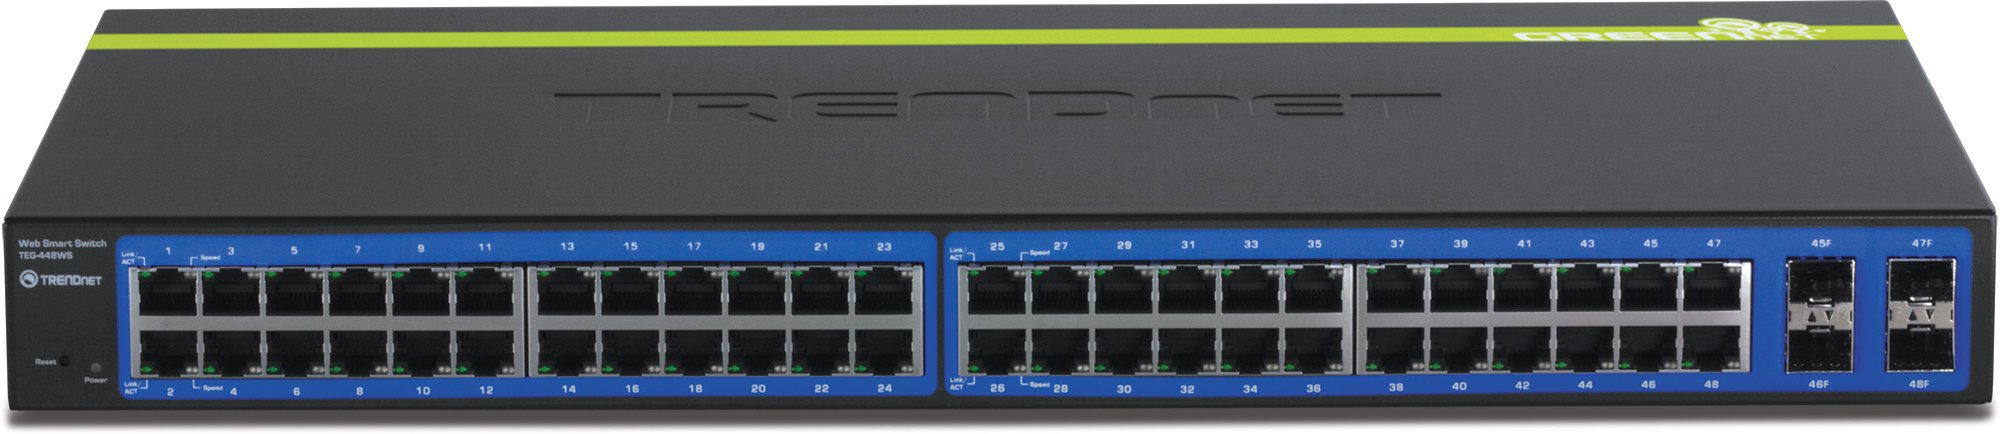 TRENDnet 48-Port 10/100/1000 Mbps Gigabit Web Smart Switch with 4 shared SFP Slots, Private & Voice VLAN Support, IPv6, Fanless, Rack Mountable, TEG-448WS by TRENDnet (Image #3)